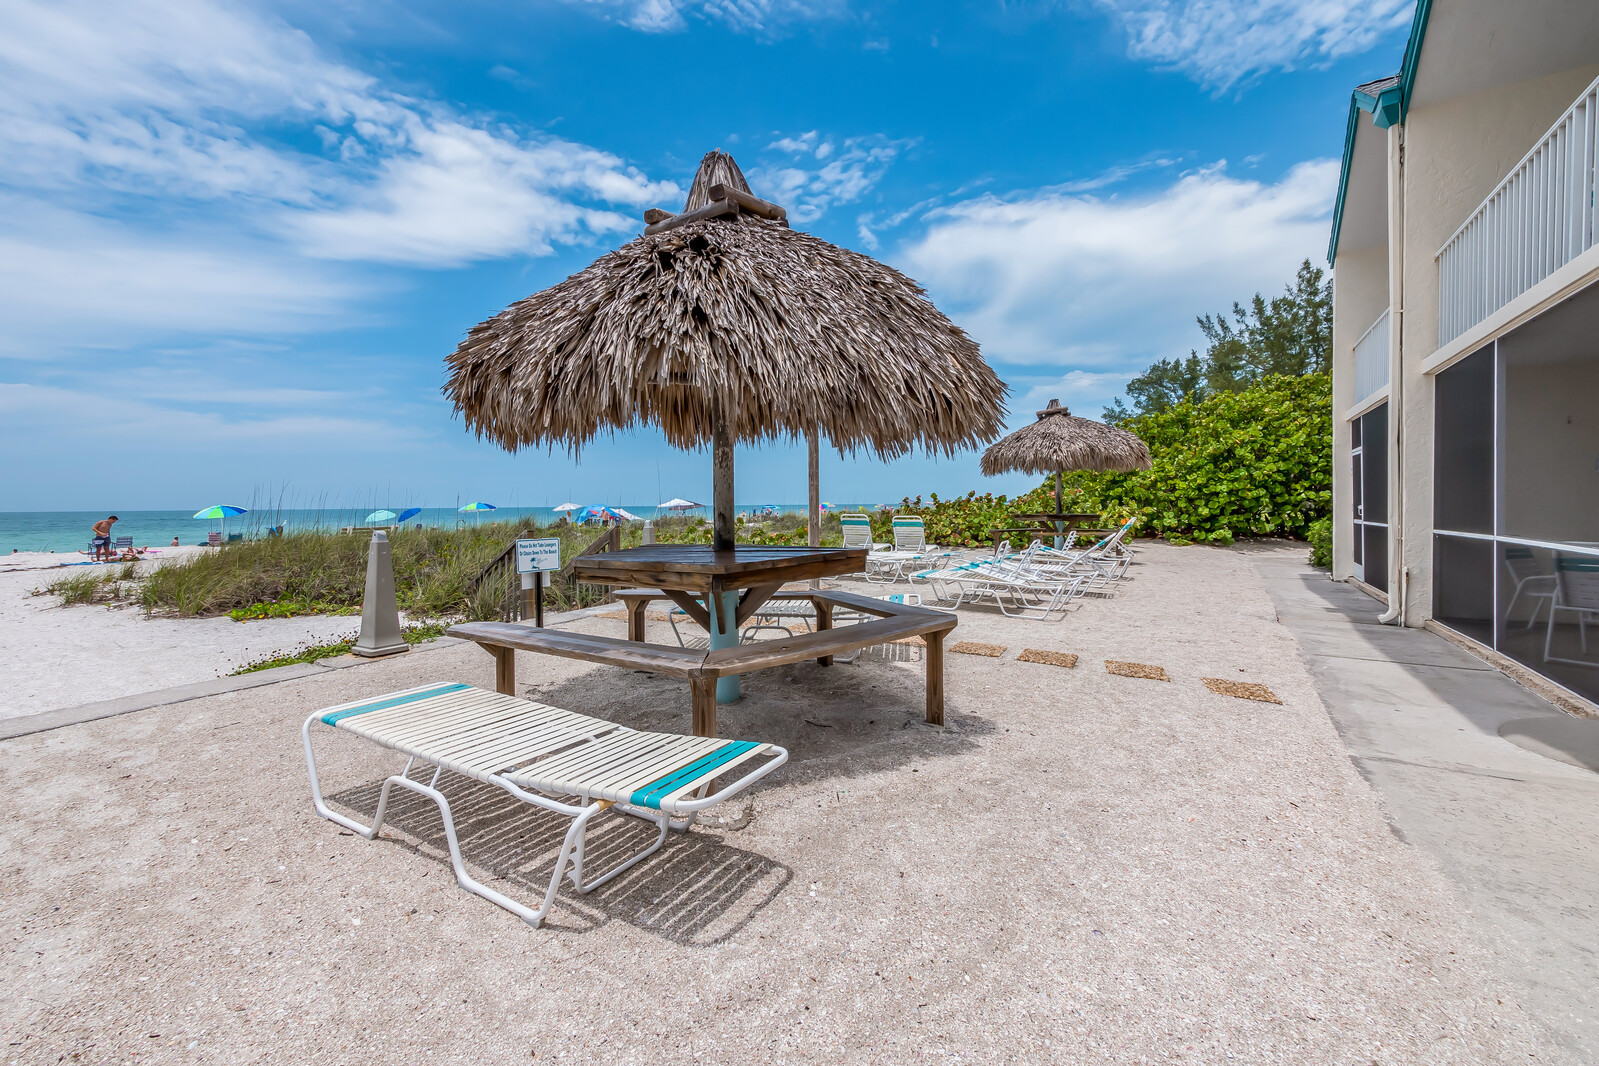 Beach access from room with loungers